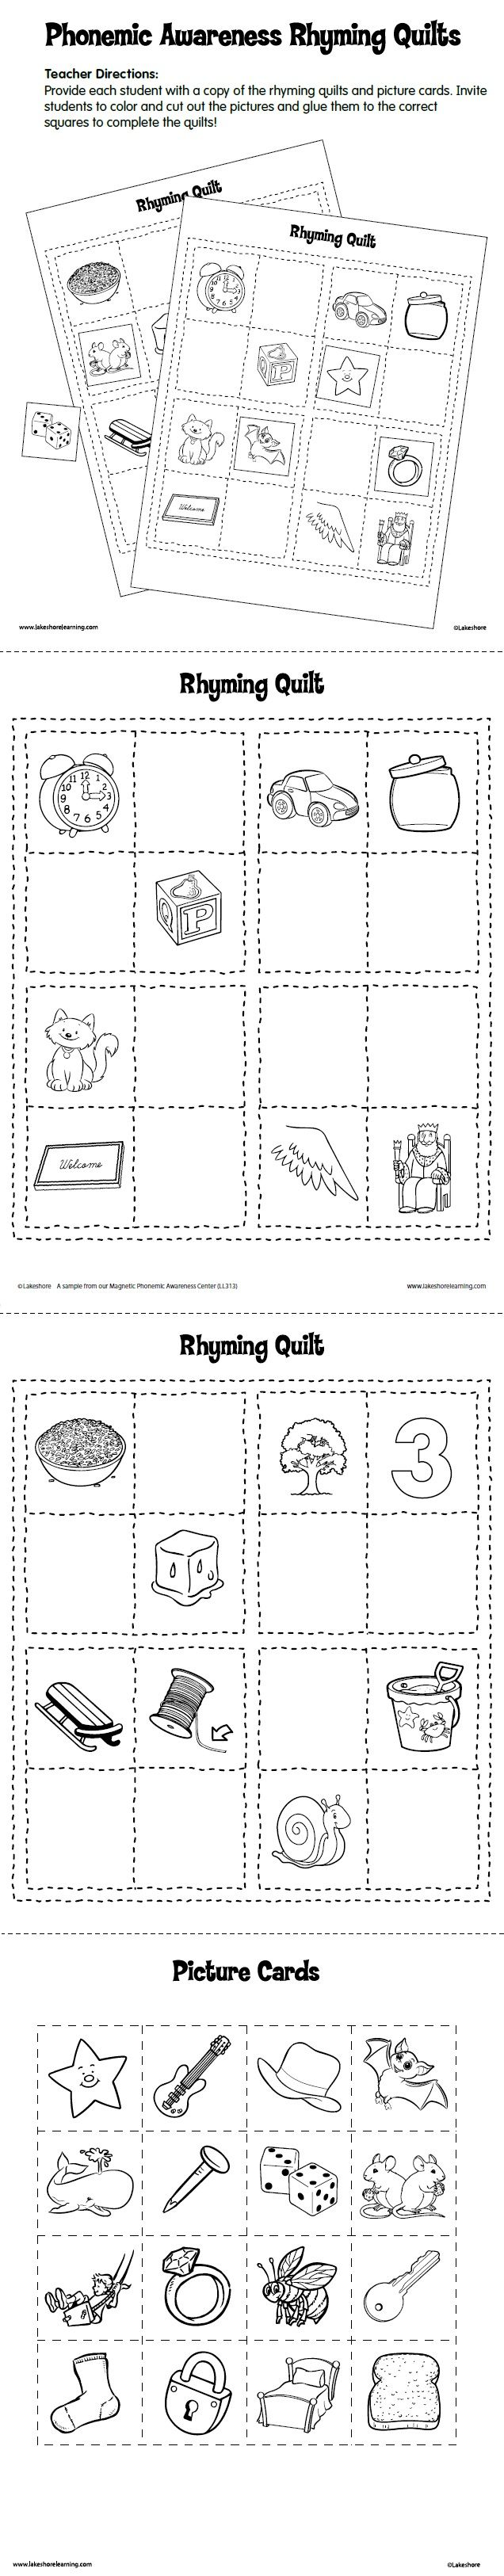 worksheet Words That Rhyme With Work 14 free sorting mats for rhyming words guided reading sons and phonemic awareness quilts printable this awesome activity encourages children to work with words